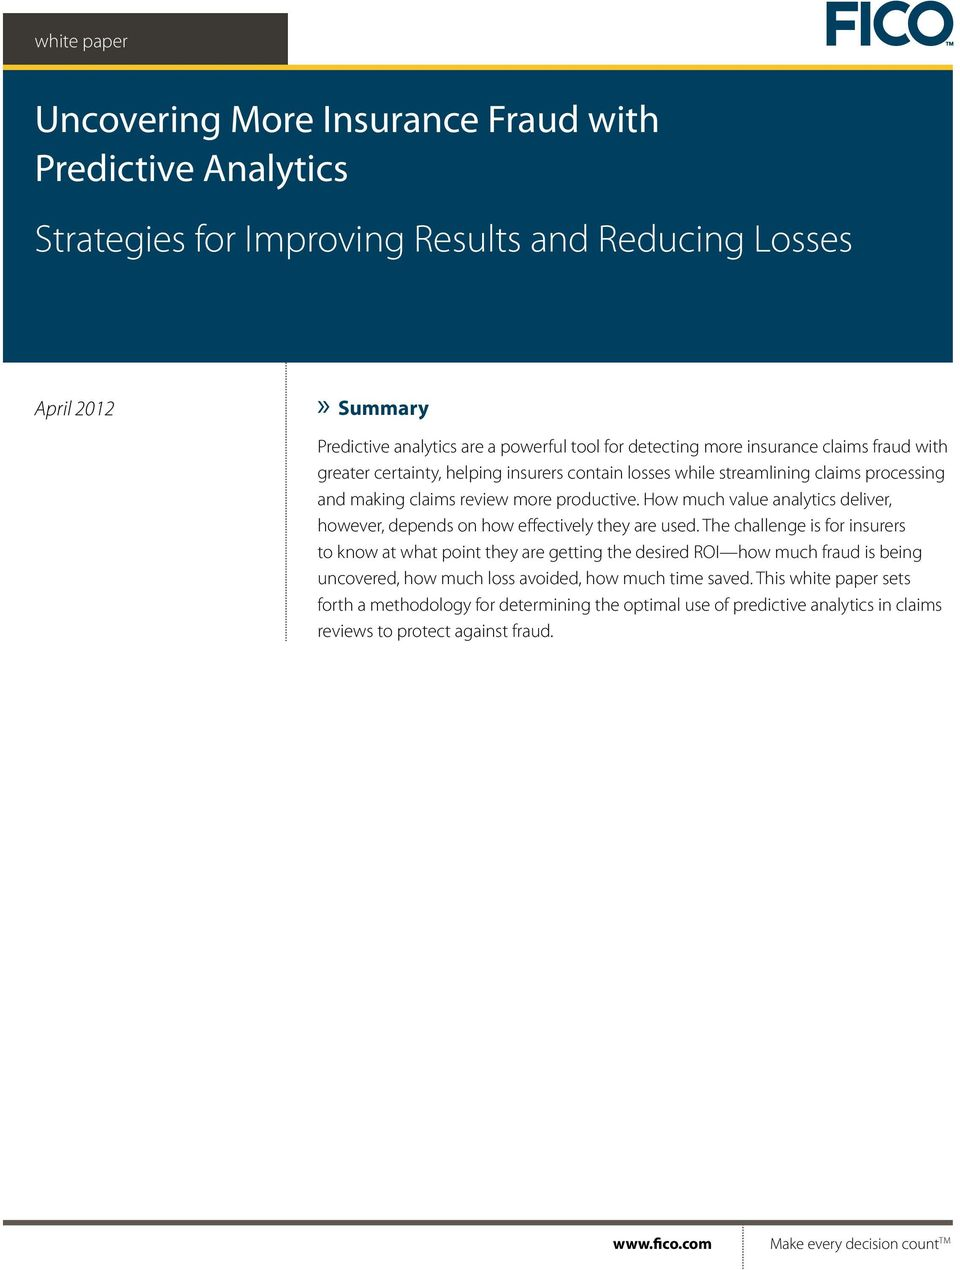 How much value analytics deliver, however, depends on how effectively they are used.